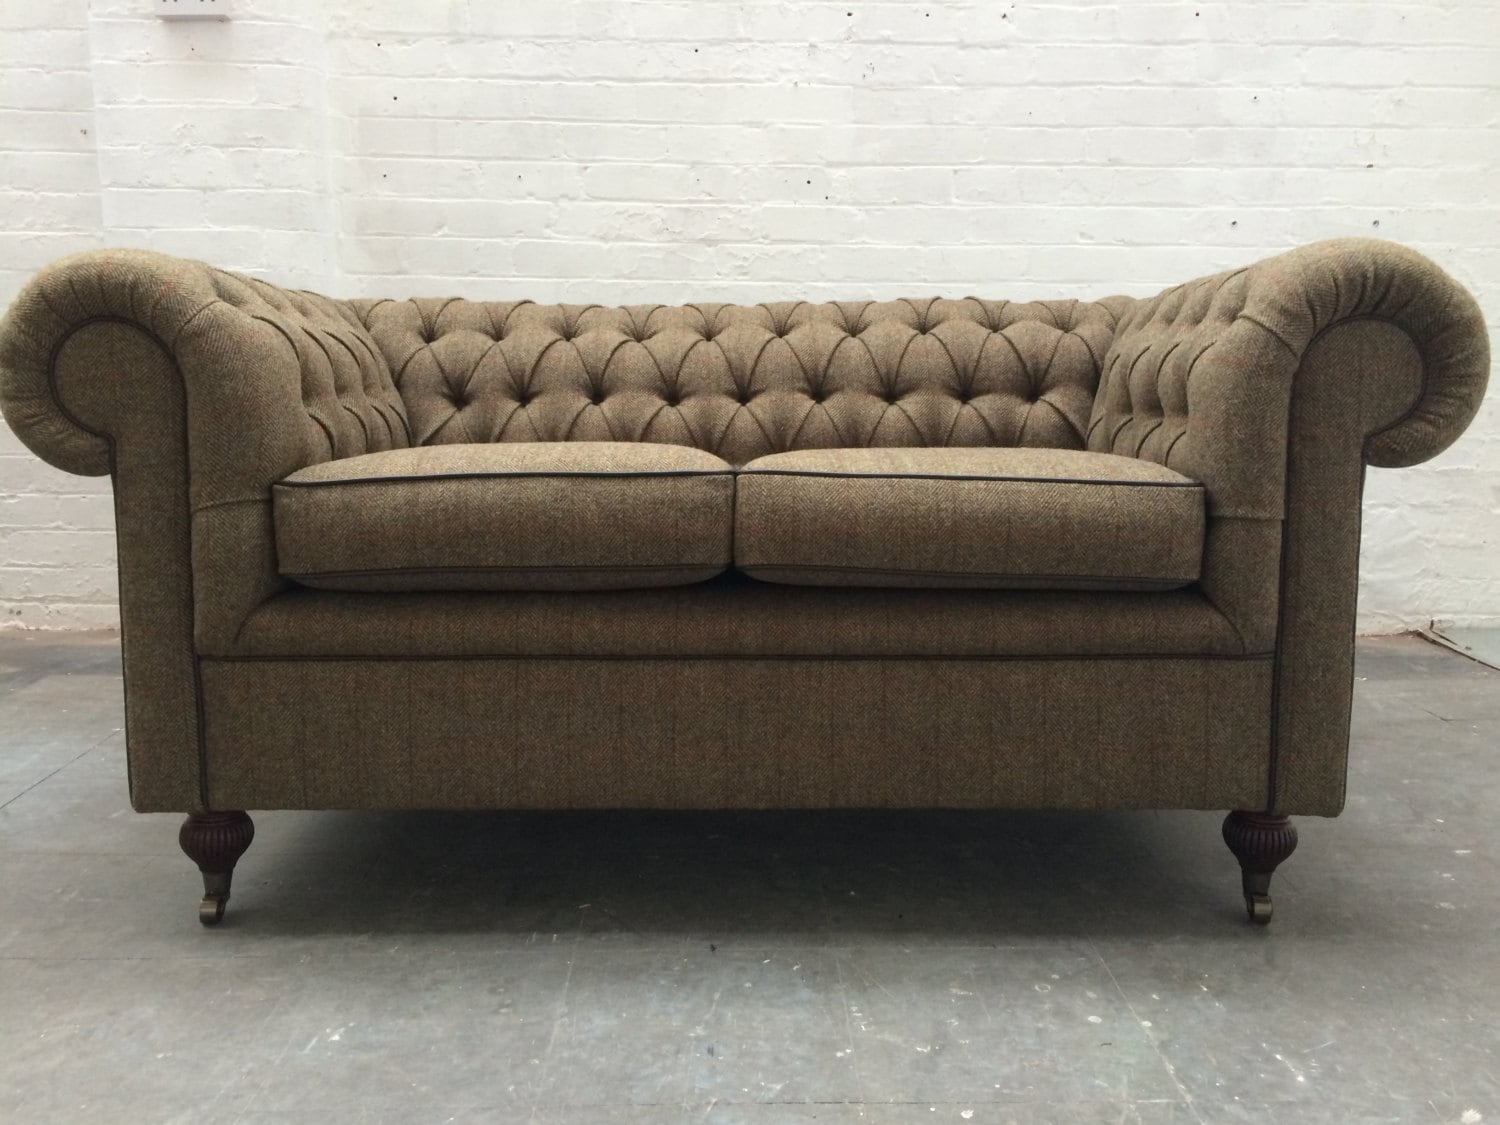 Harris tweed chesterfield sofa by designerworkshopuk on etsy for Leather and tweed sofa